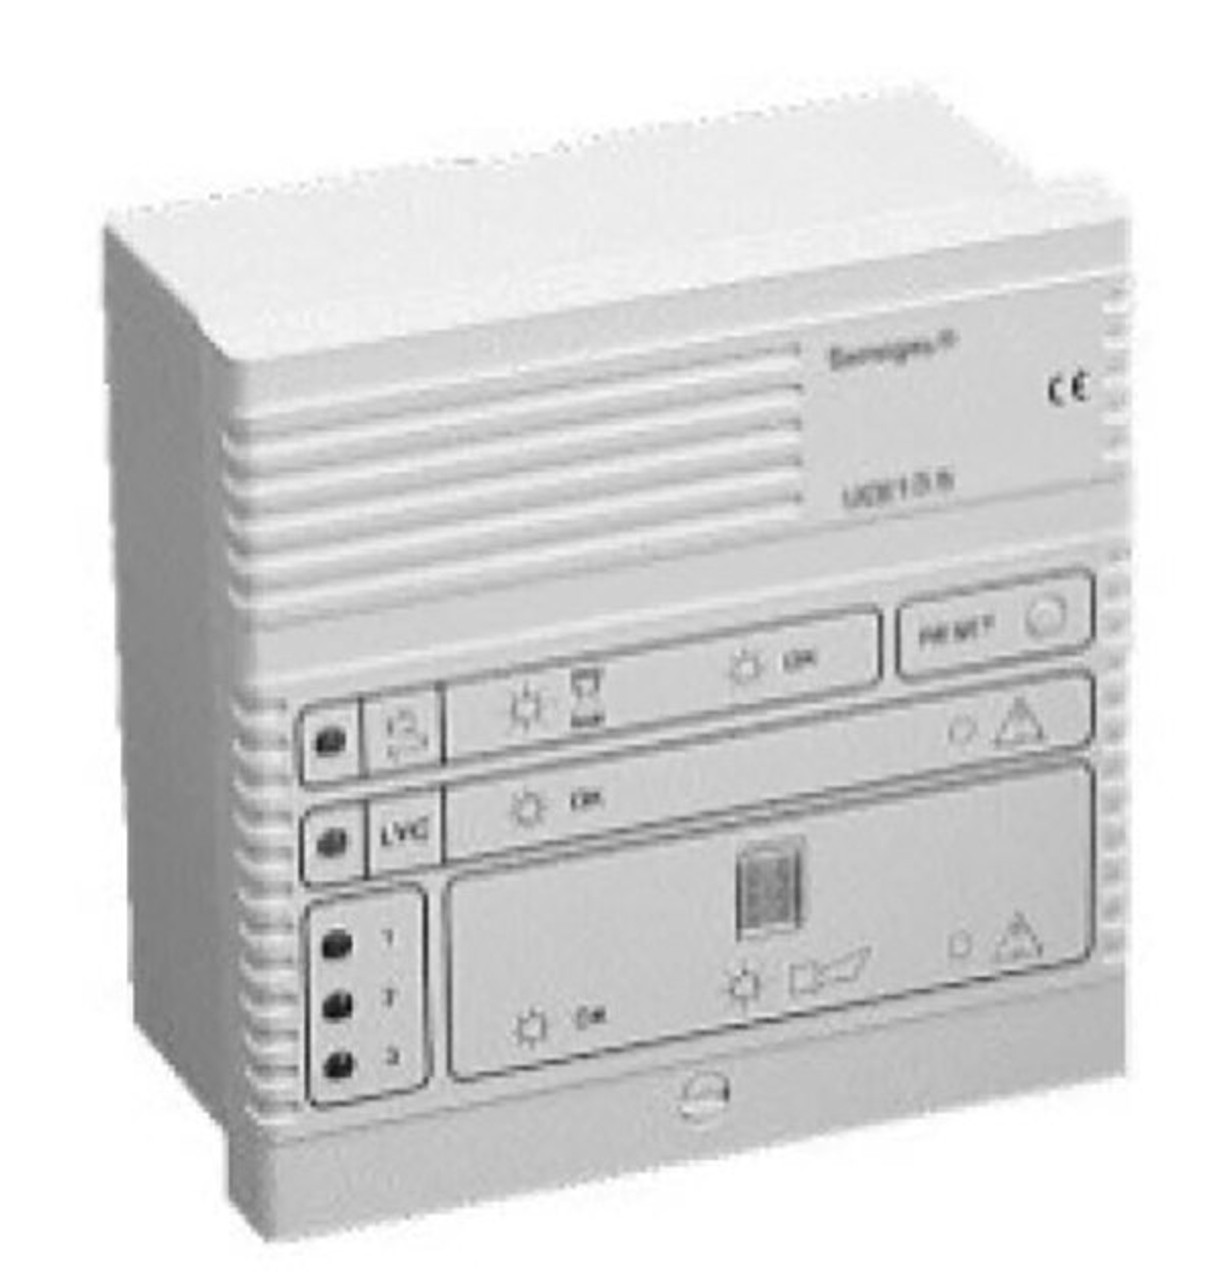 Sensigas EXT6.5 EXTander for UCE13.5 to connect up to 6 more UR..13/A each EXT6.5